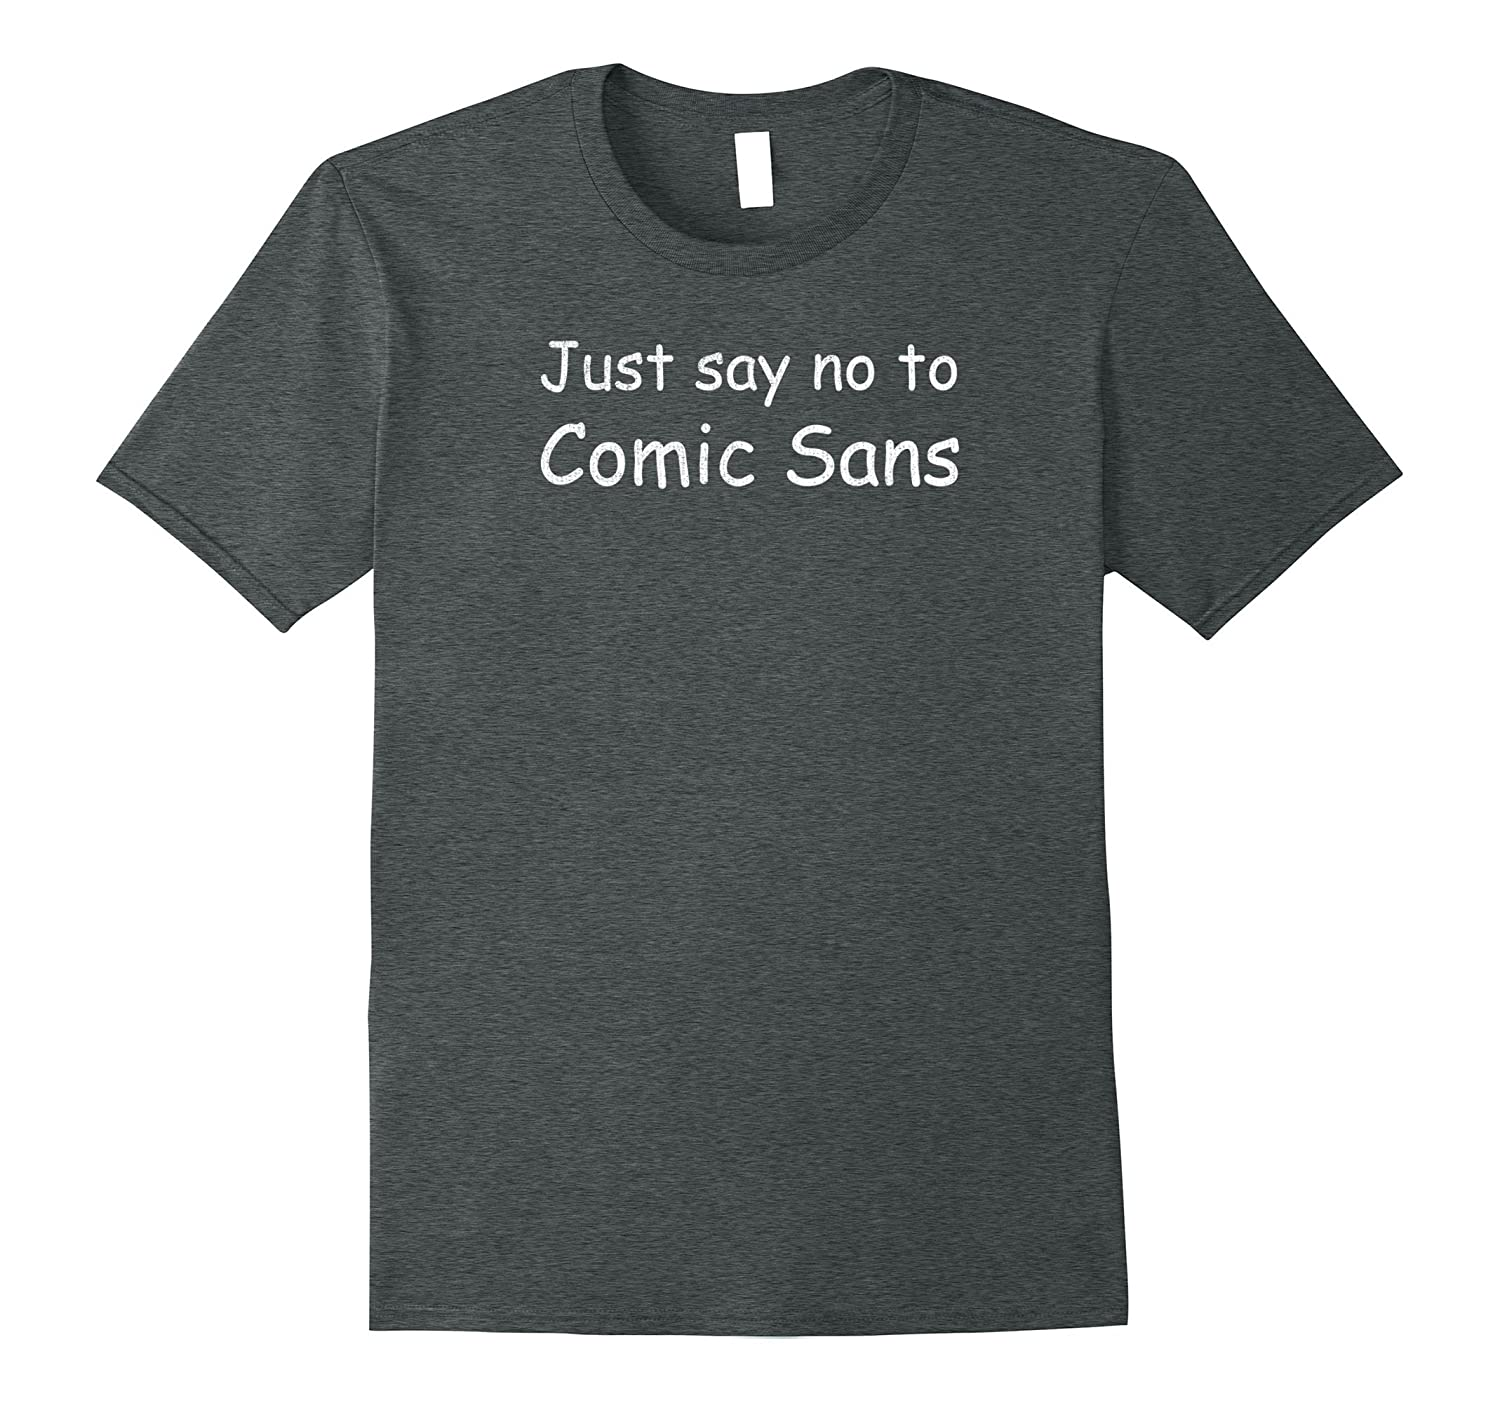 Just say no to comic sans graphic designer type tshirt-PL